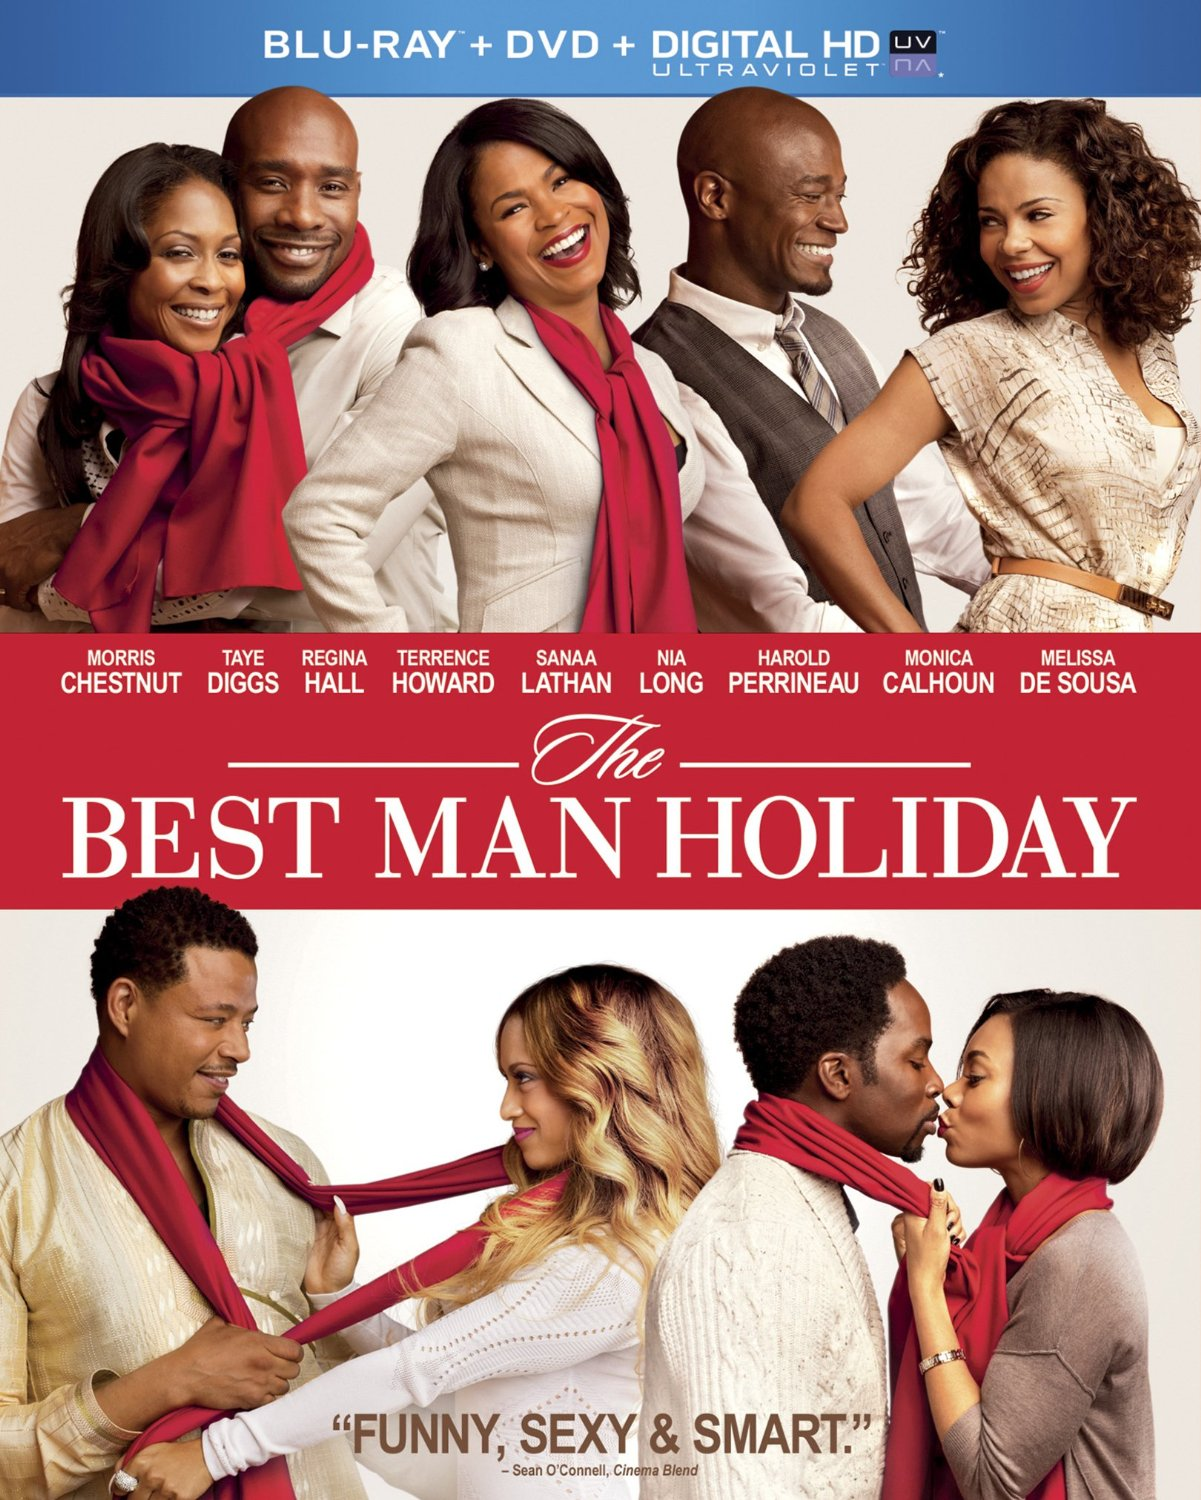 The Best Man Holiday Blu-ray